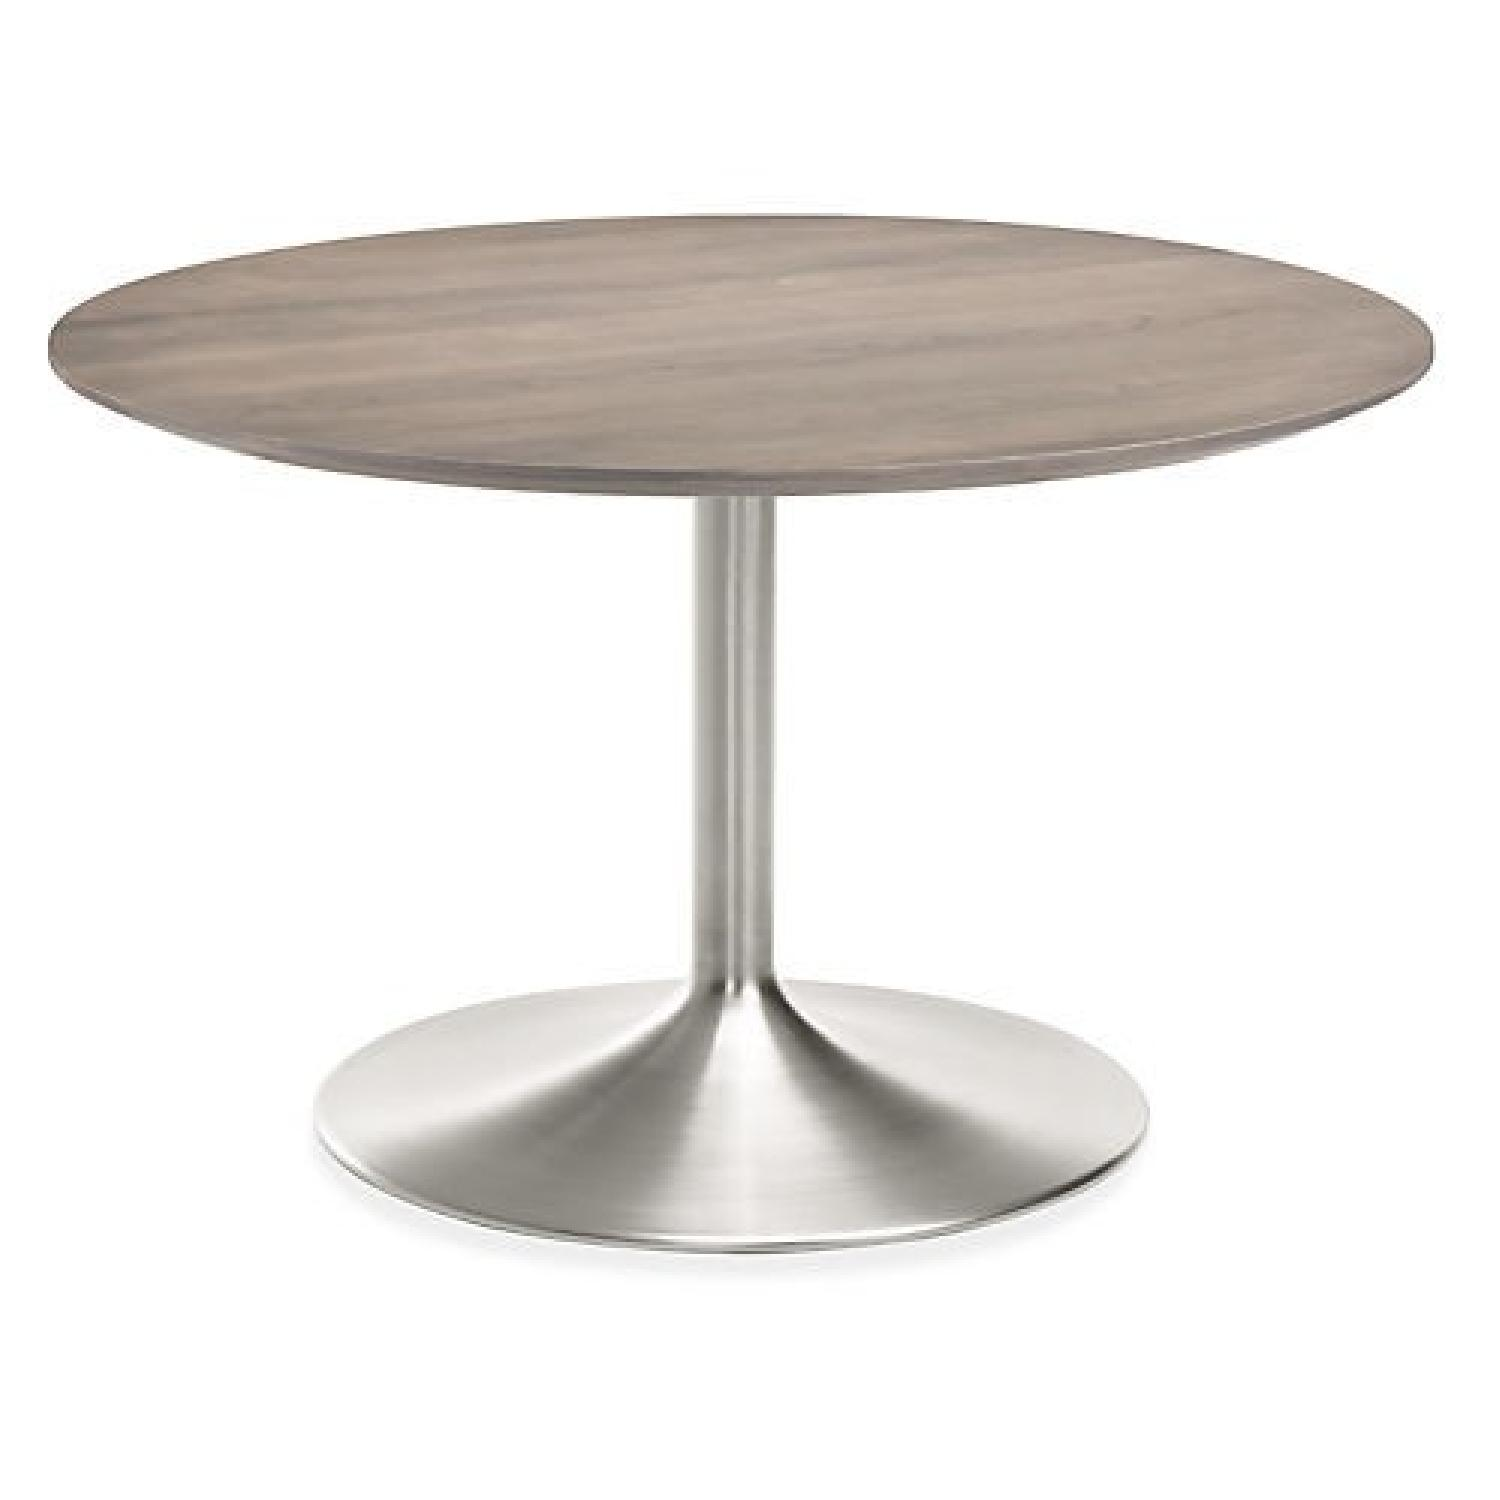 Room & Board Aria Dining Table - image-1